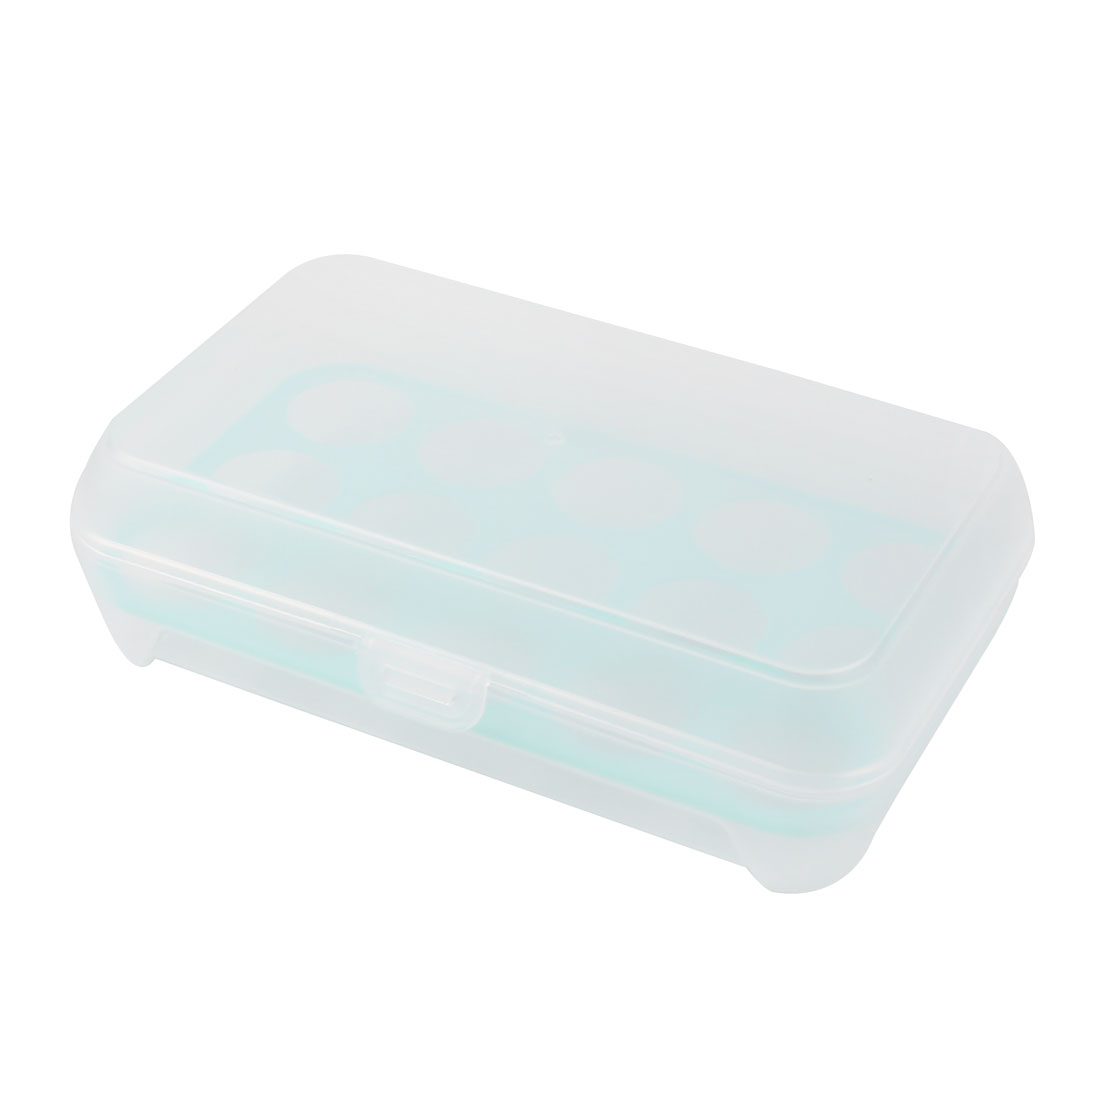 Household Kitchen Refrigerator Plastic Rectangle Shaped 15 Slots Eggs Storage Box Container Case Aquamarine